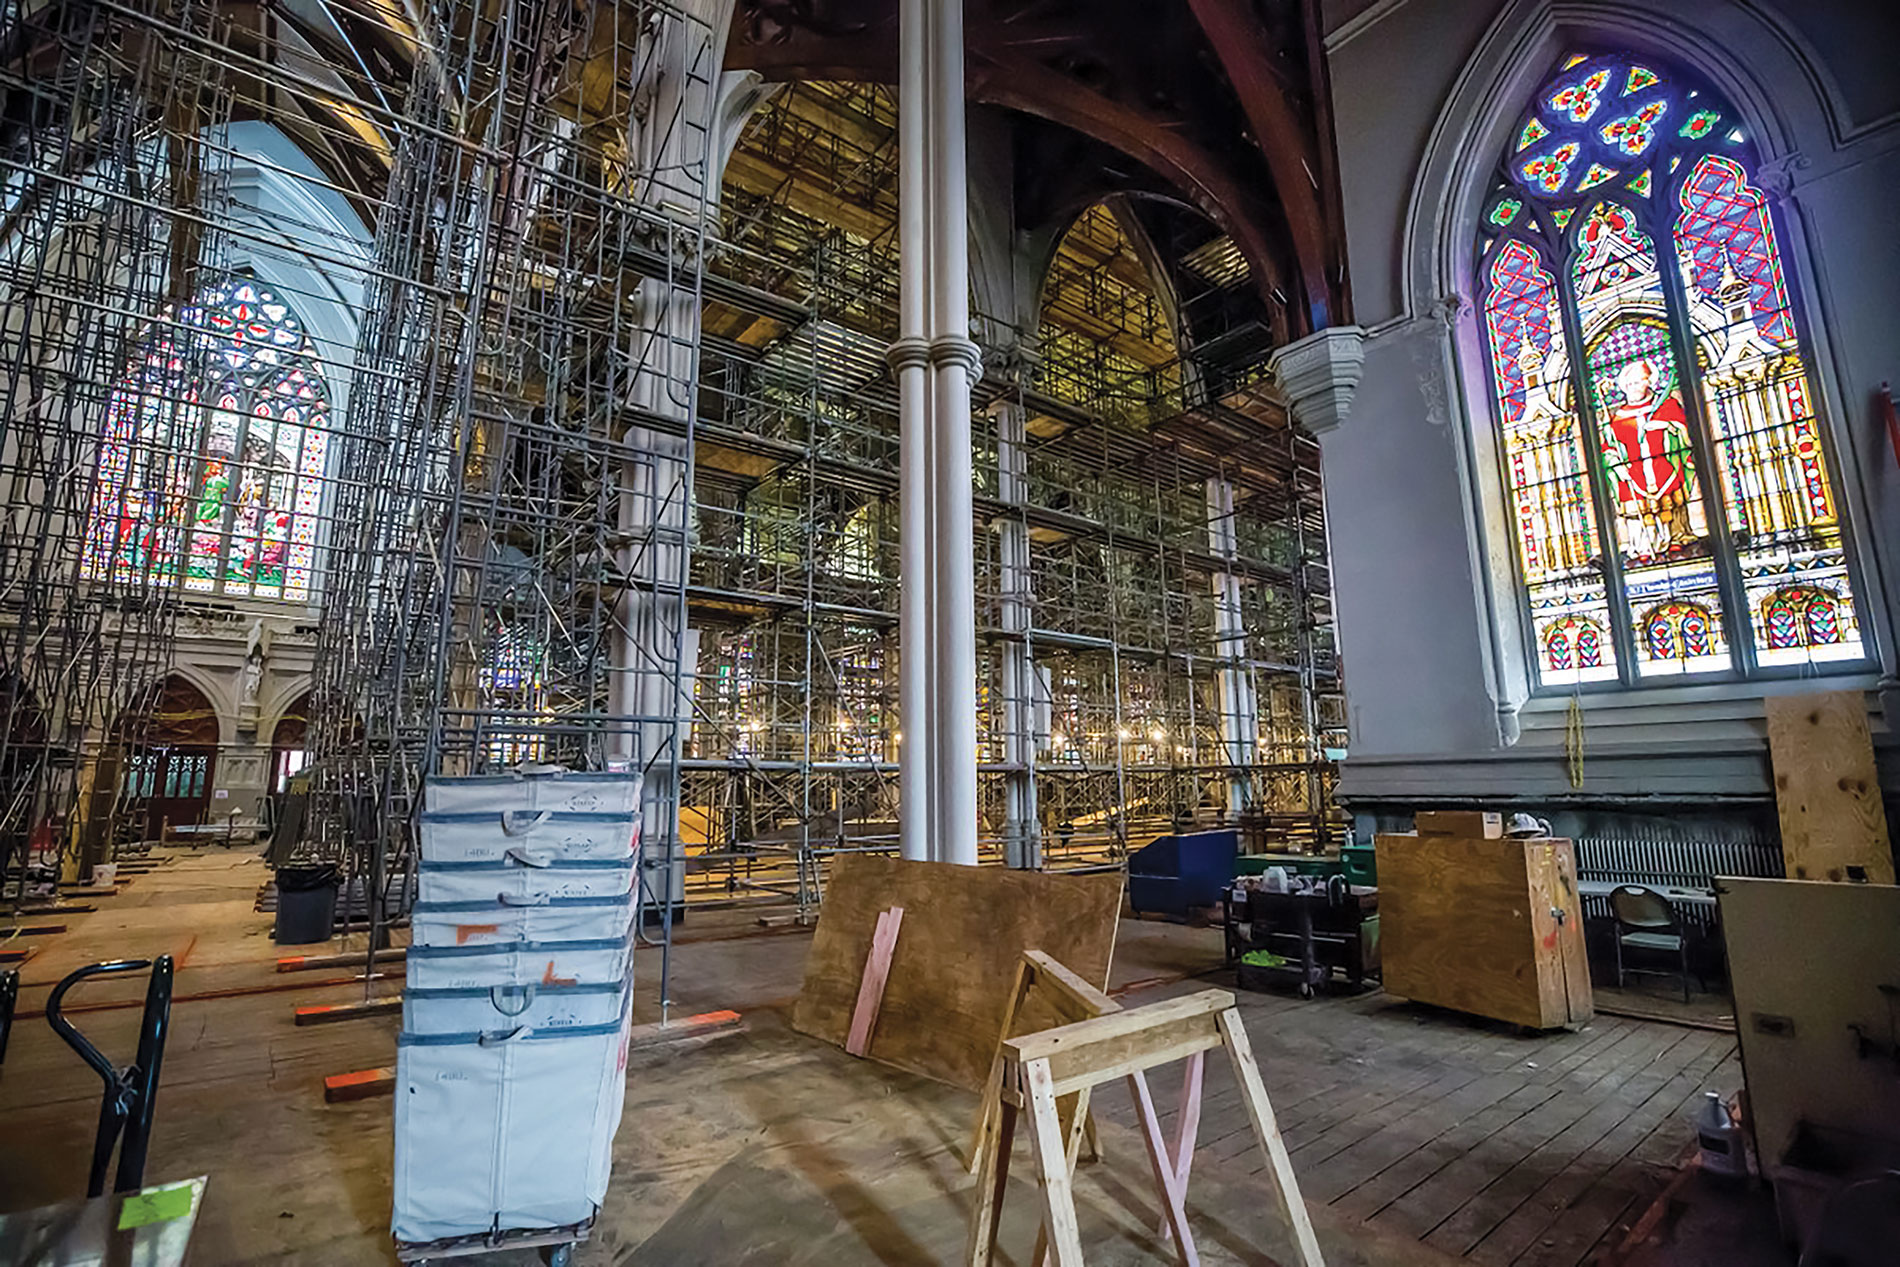 Scaffolding crisscrossed the entire cathedral interior. | McDonald Electrical Corp.